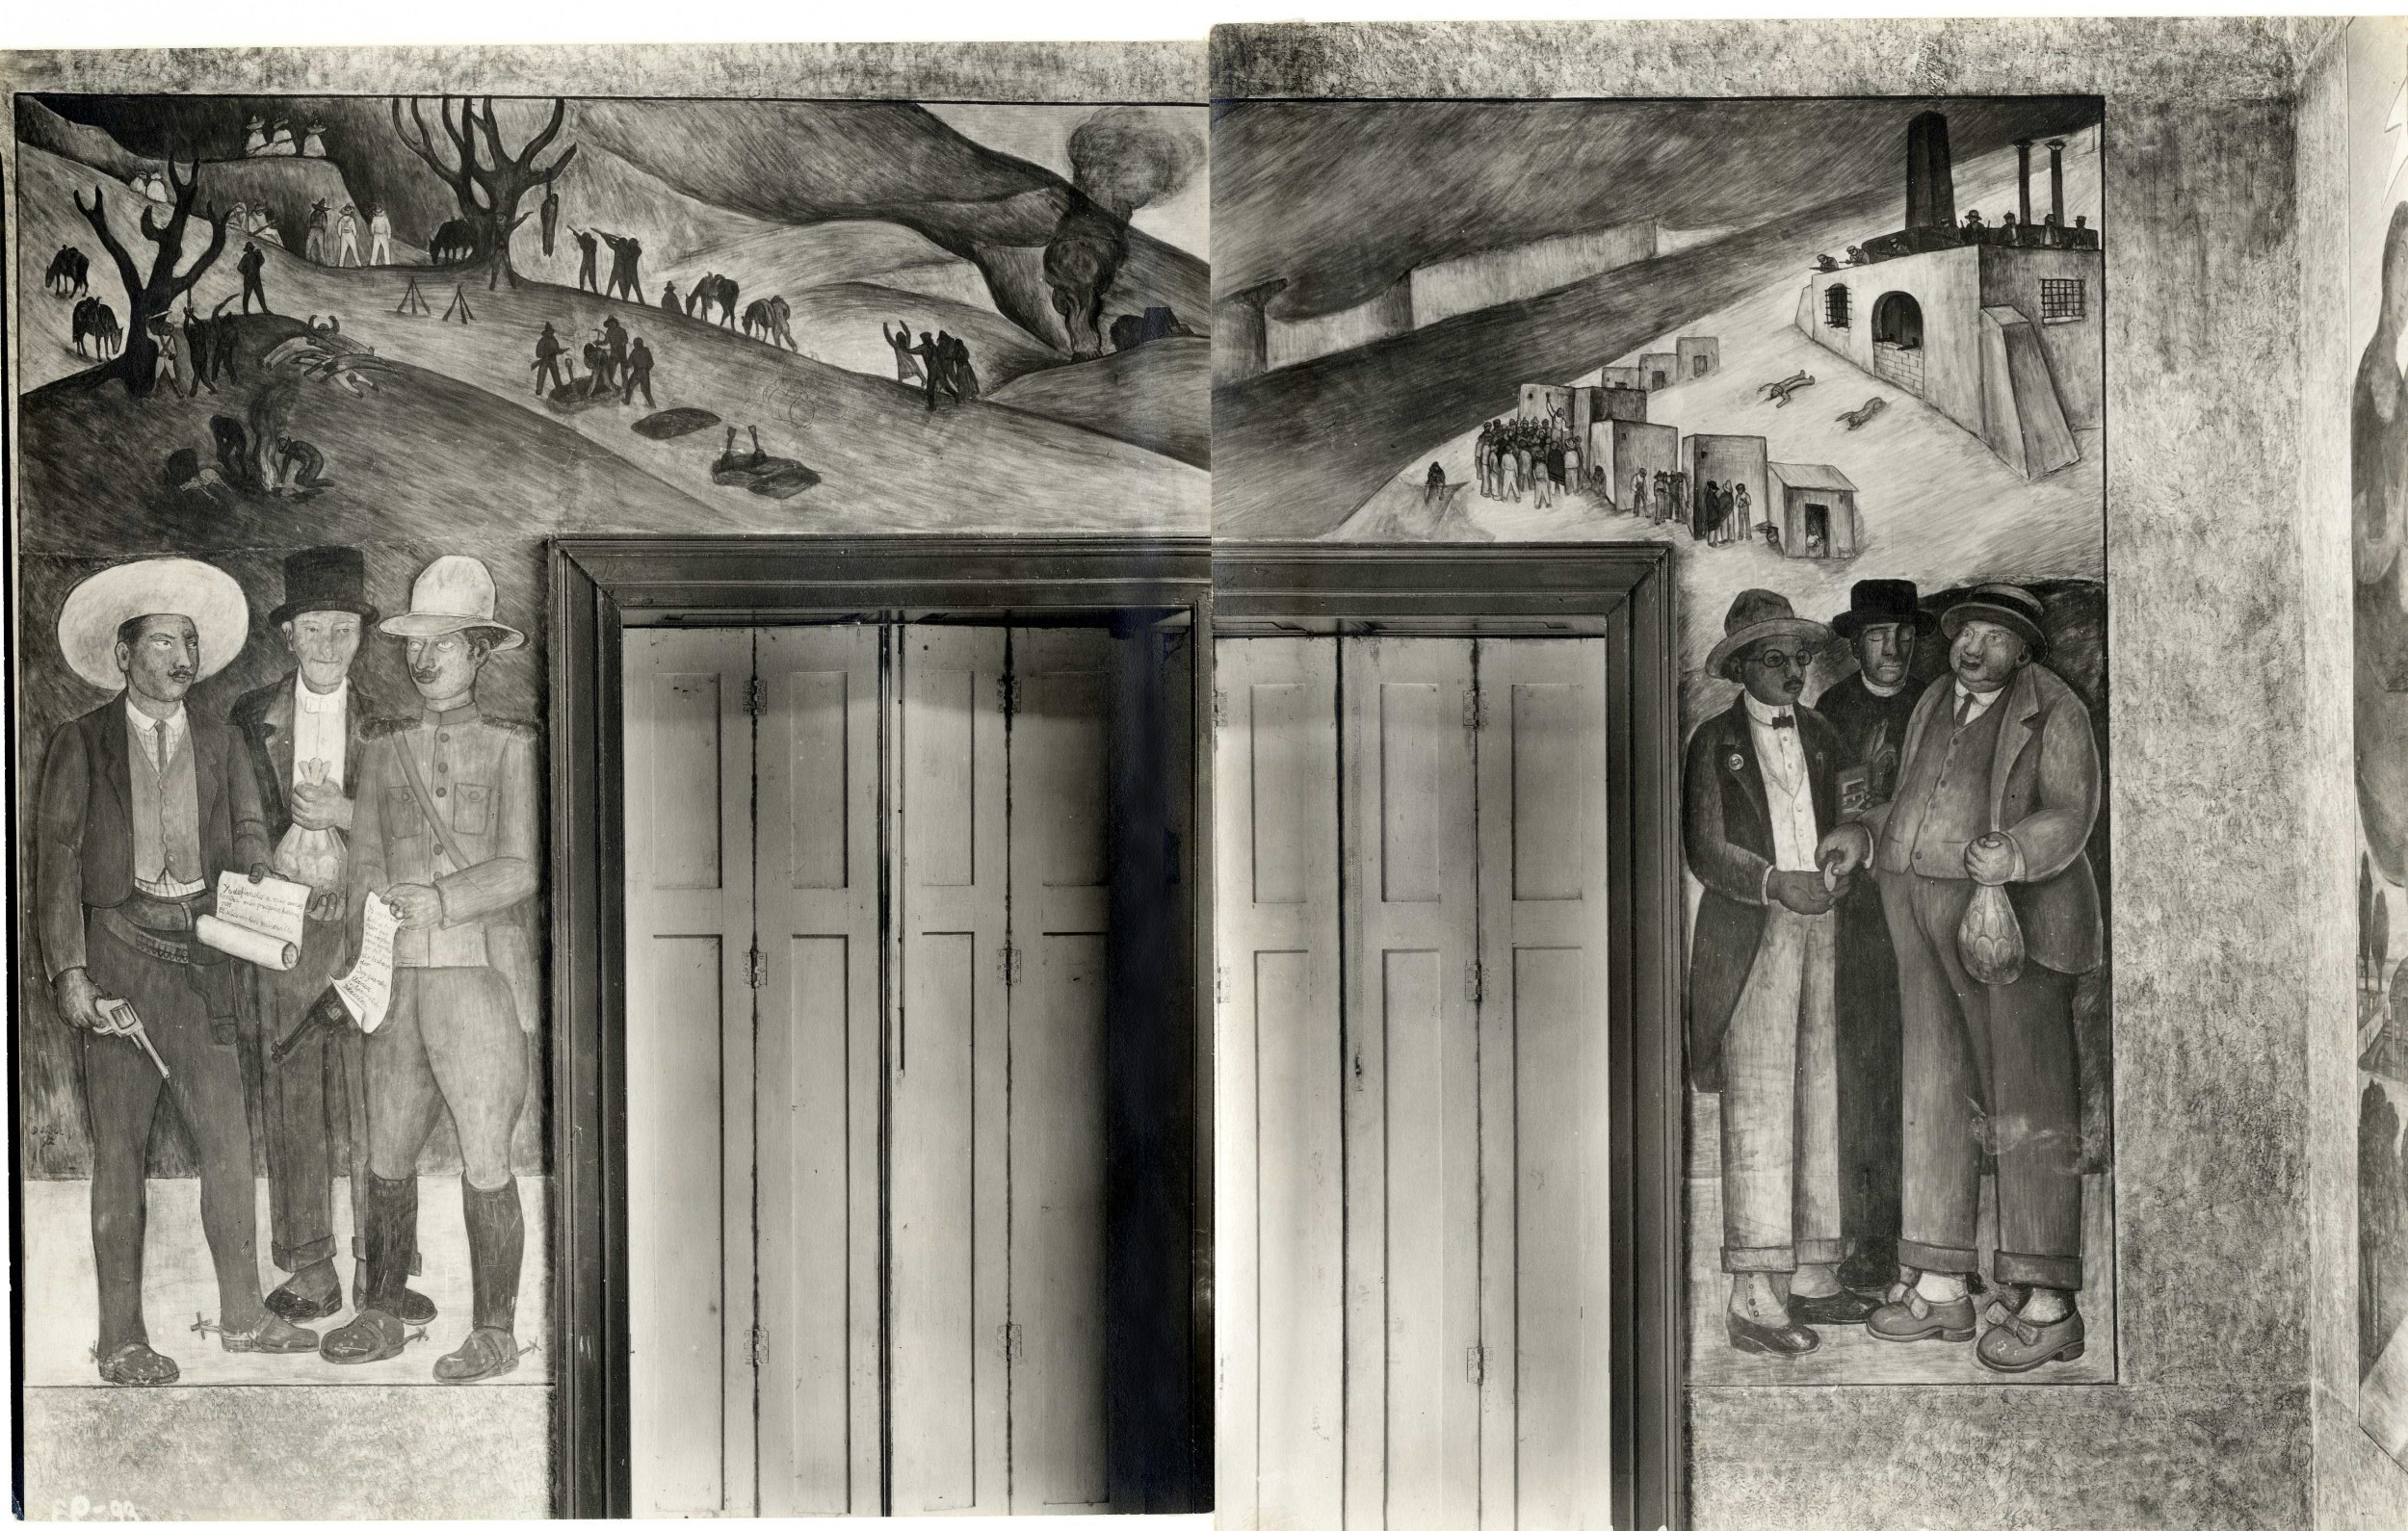 Diego Rivera mural study (�Exchange of Land and Money�), 1926-28